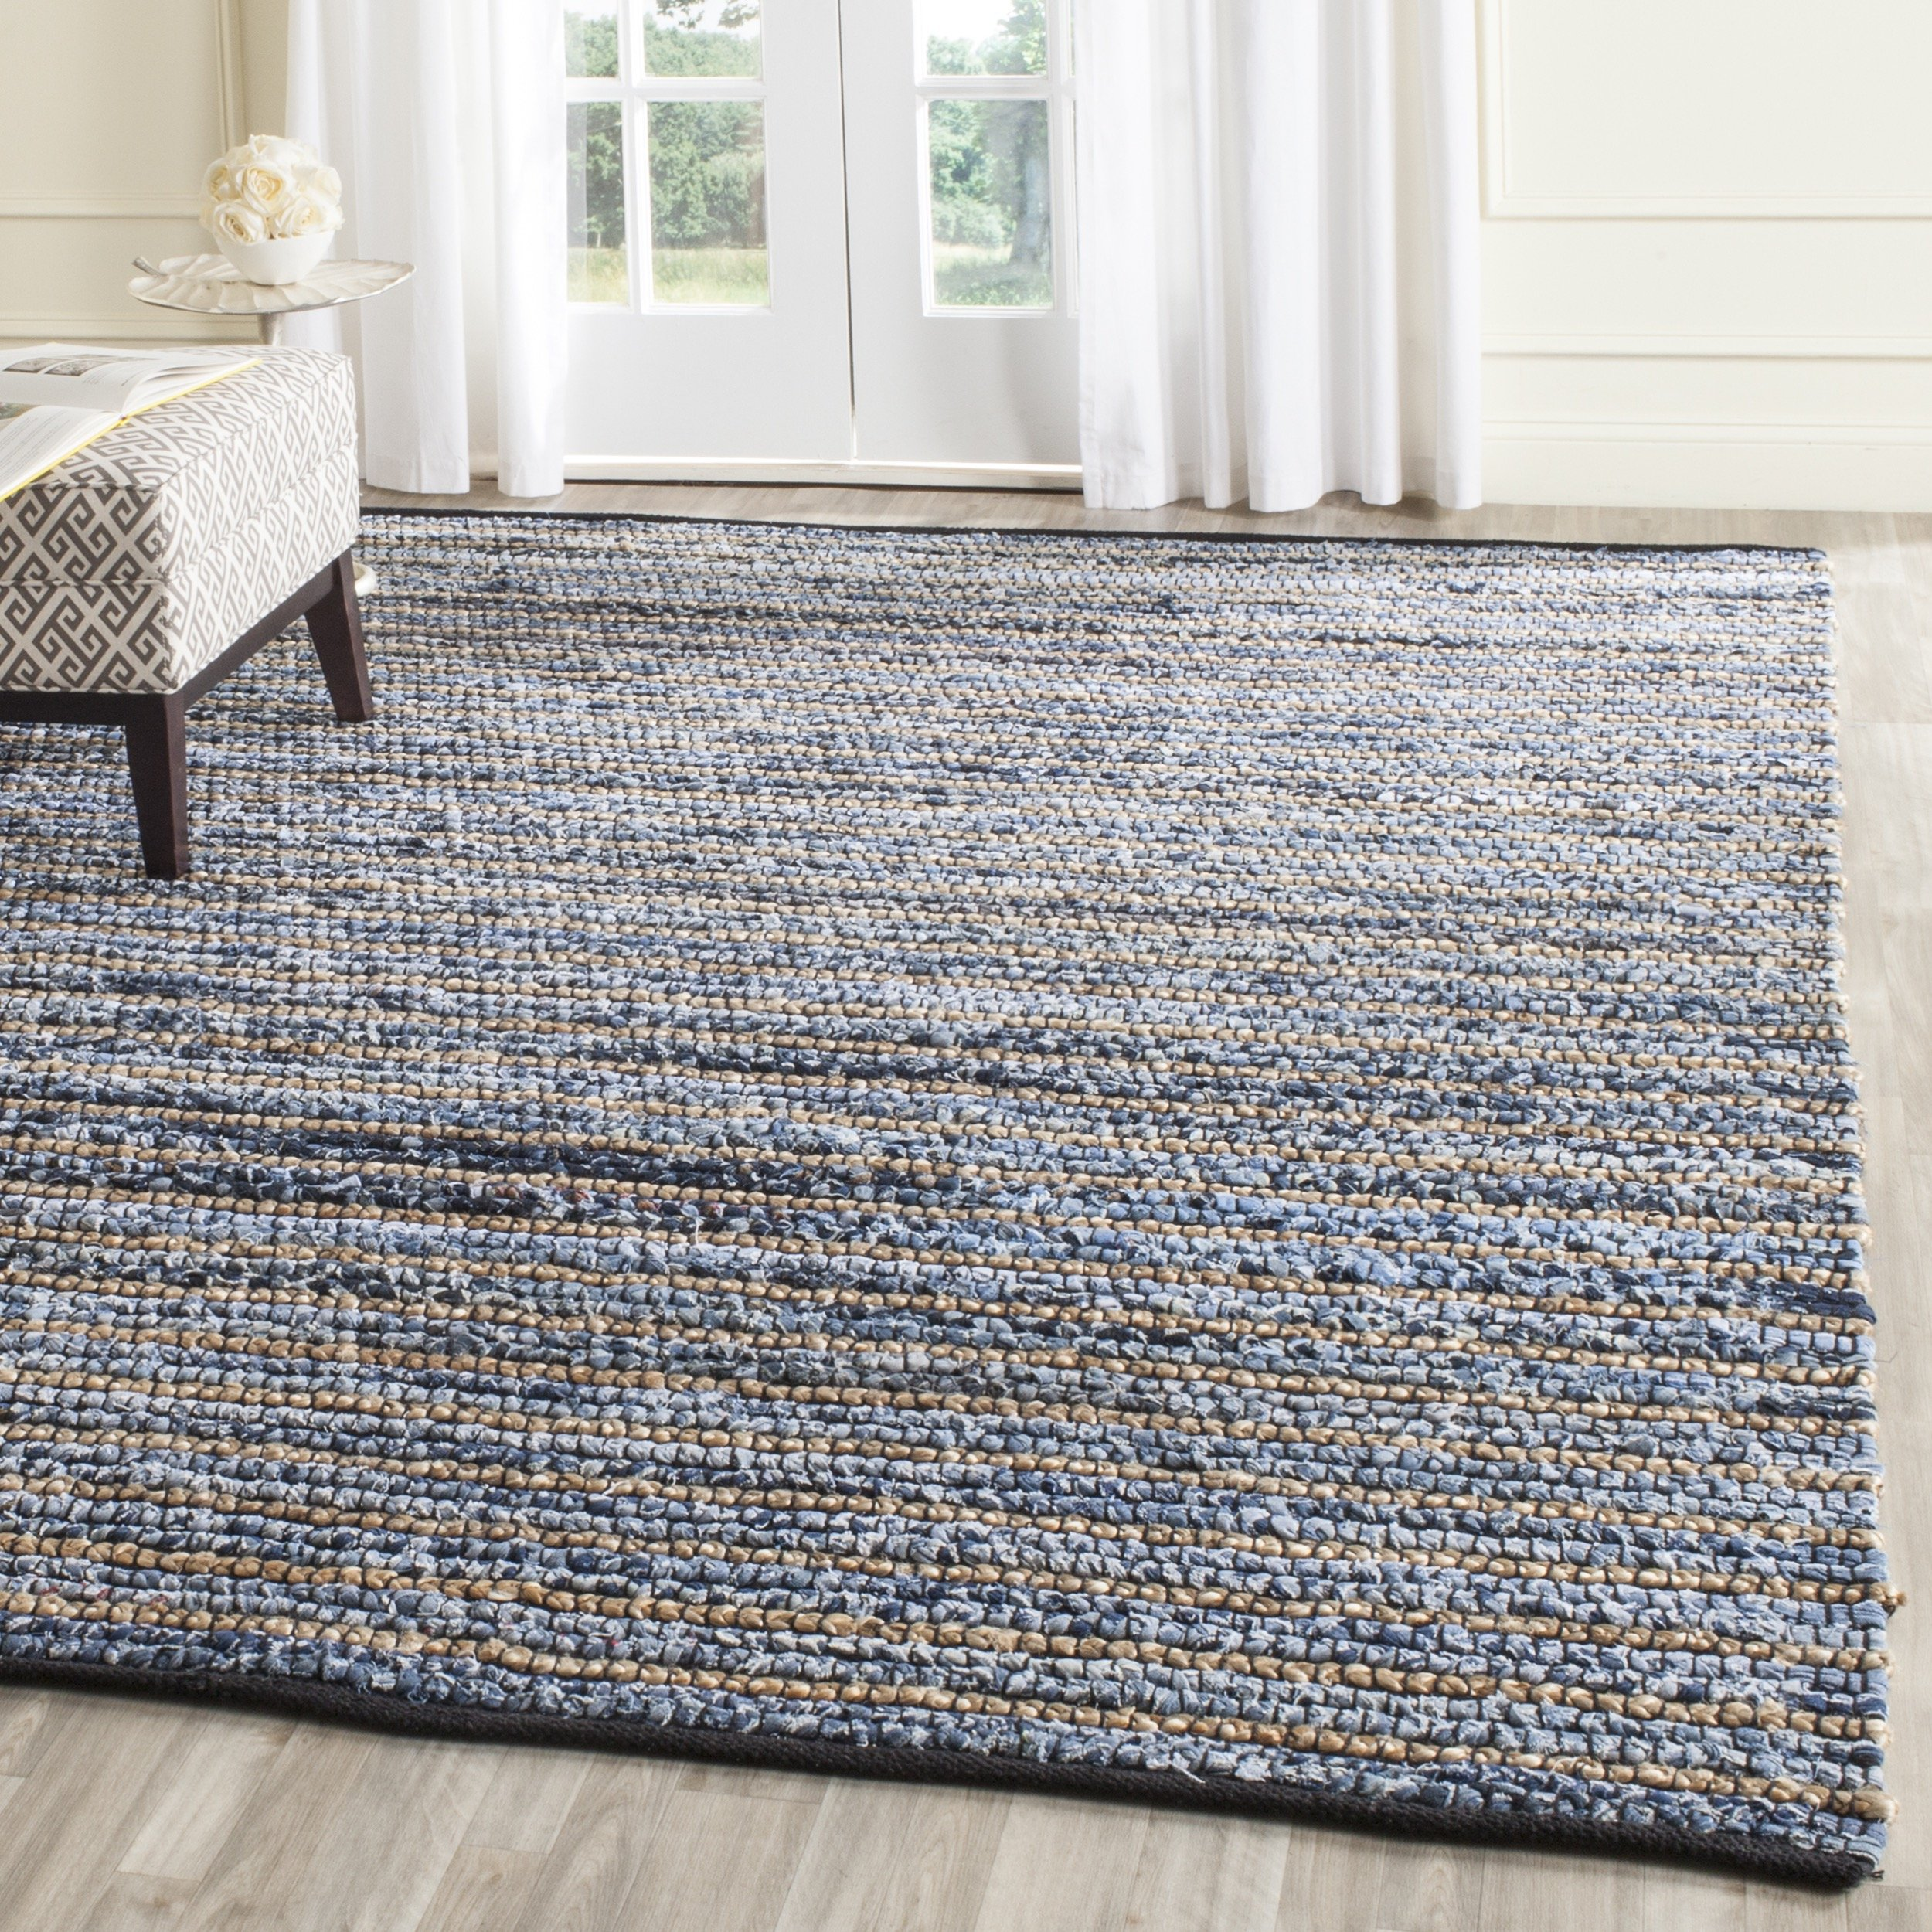 Safavieh Cape Cod Collection CAP363A Hand Woven Blue and Natural Jute and Cotton Area Rug (9' x 12') by Safavieh